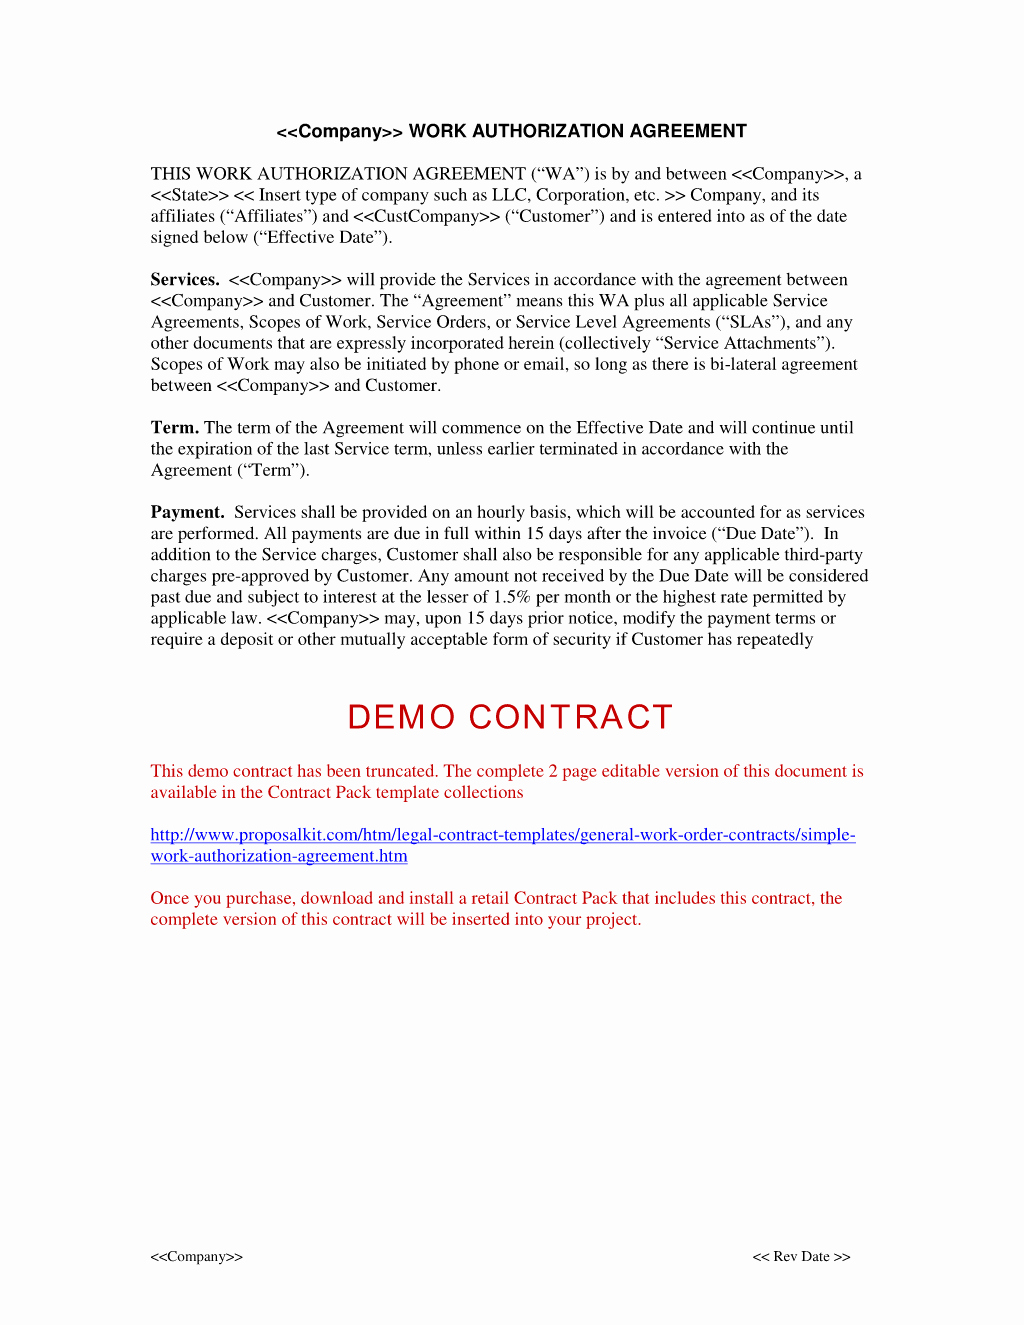 Simple Service Agreement Template New How to Write Your Own Simple Work Authorization Agreement